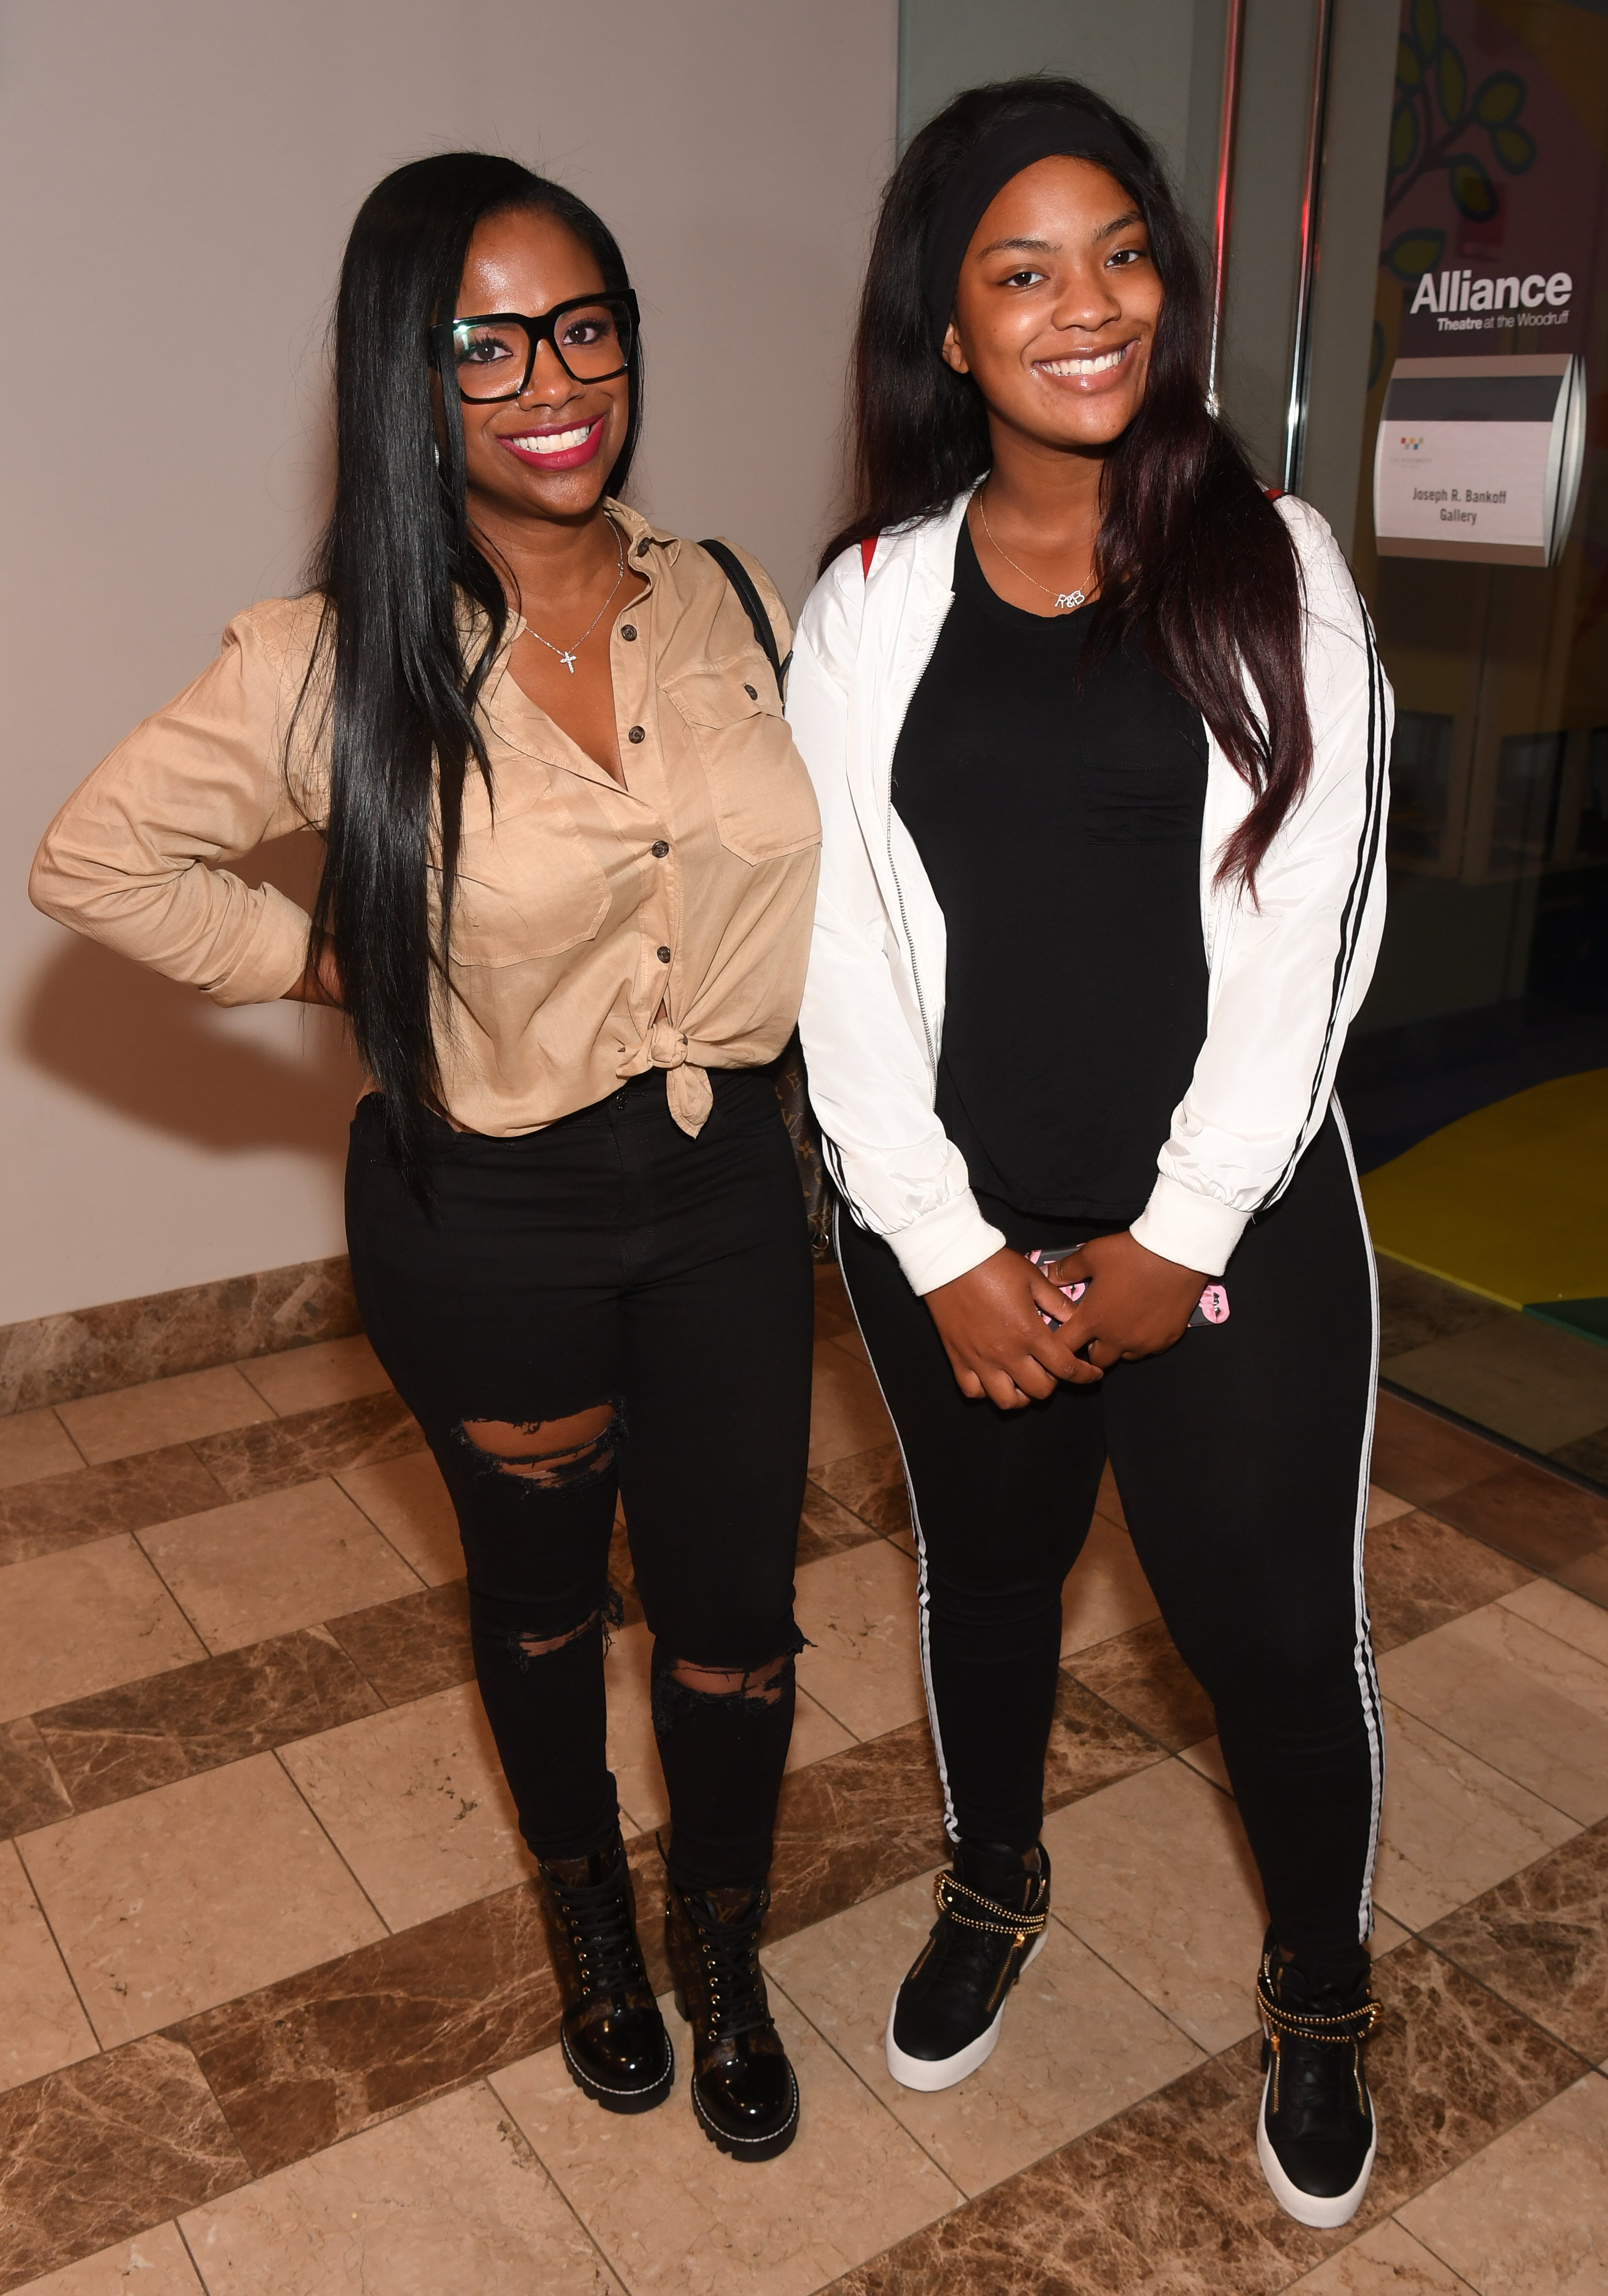 """Riley and Kandi Burruss attend the premiere of """"Growing Up Hip-Hop: Atlanta"""" on May 23, 2017 in Atlanta, Georgia. 